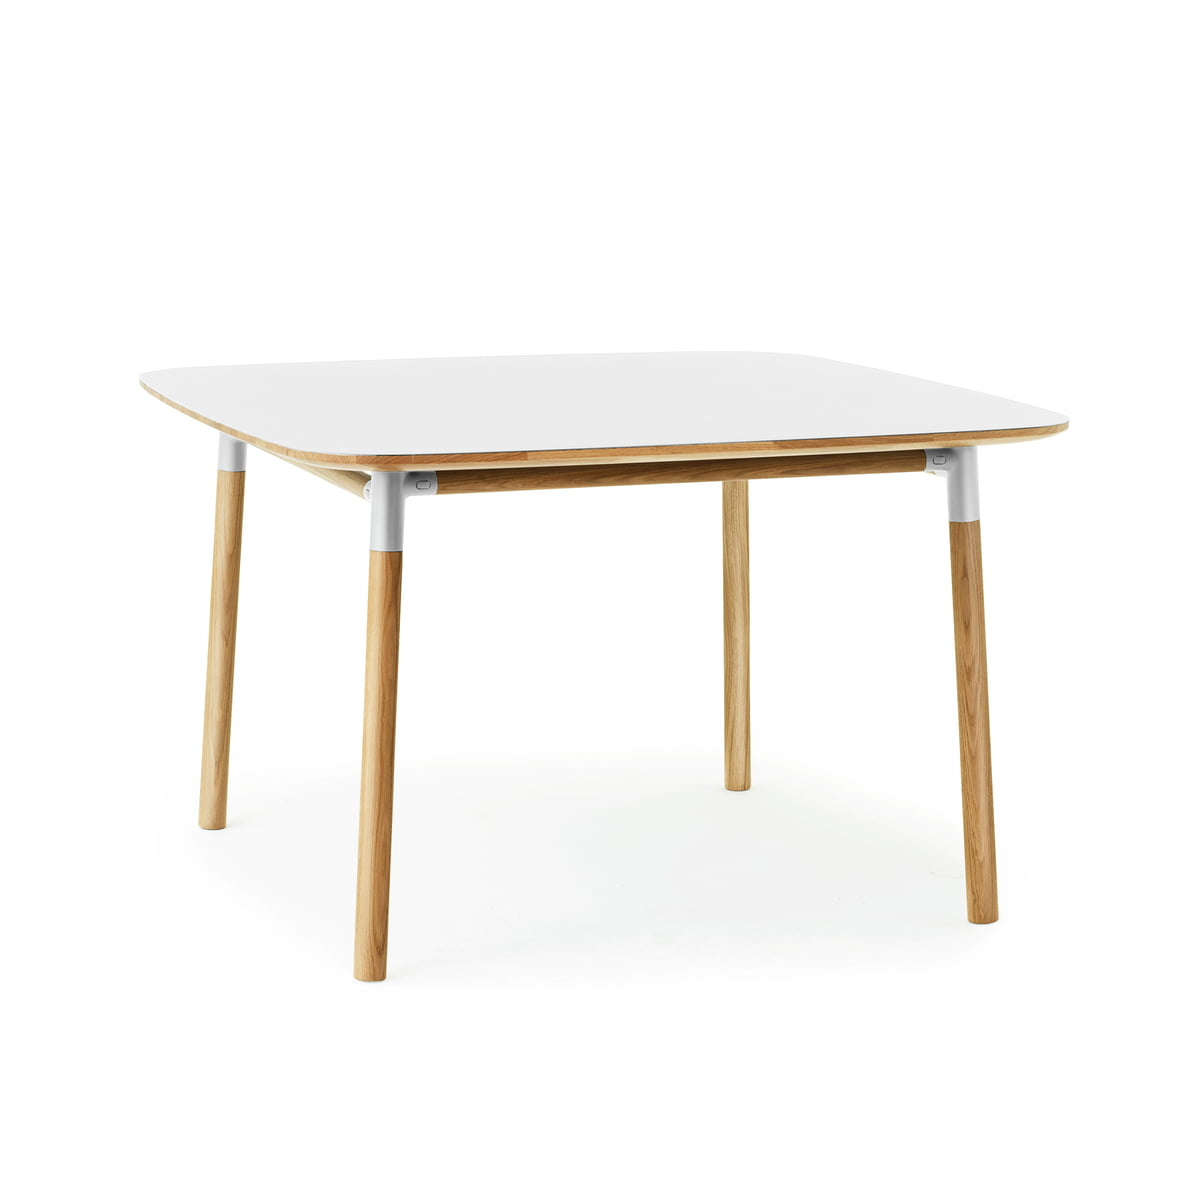 f696ae0008496 Form table 120 x 120 cm by Normann Copenhagen made of oak in white